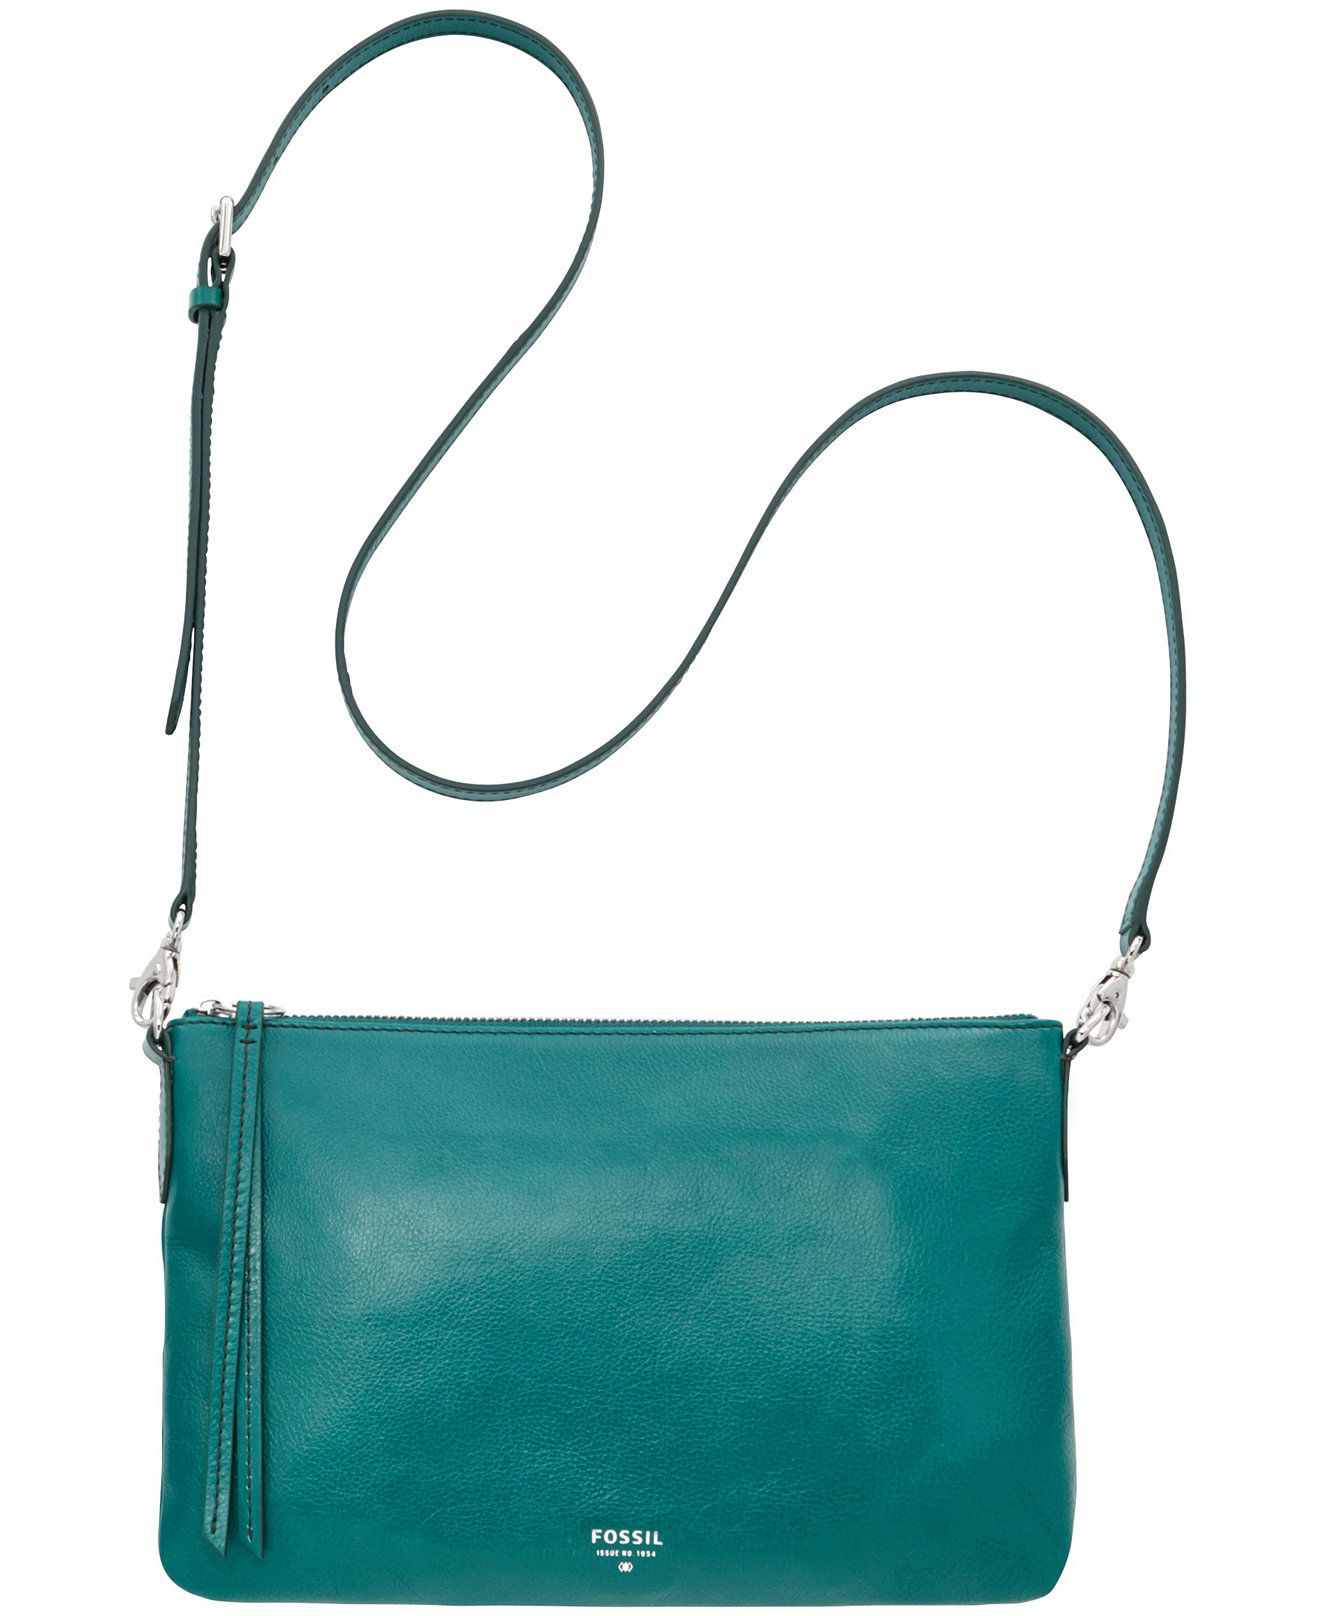 Fossil Sydney Leather Top Zip Crossbody Clearance Handbags Accessories Macy S